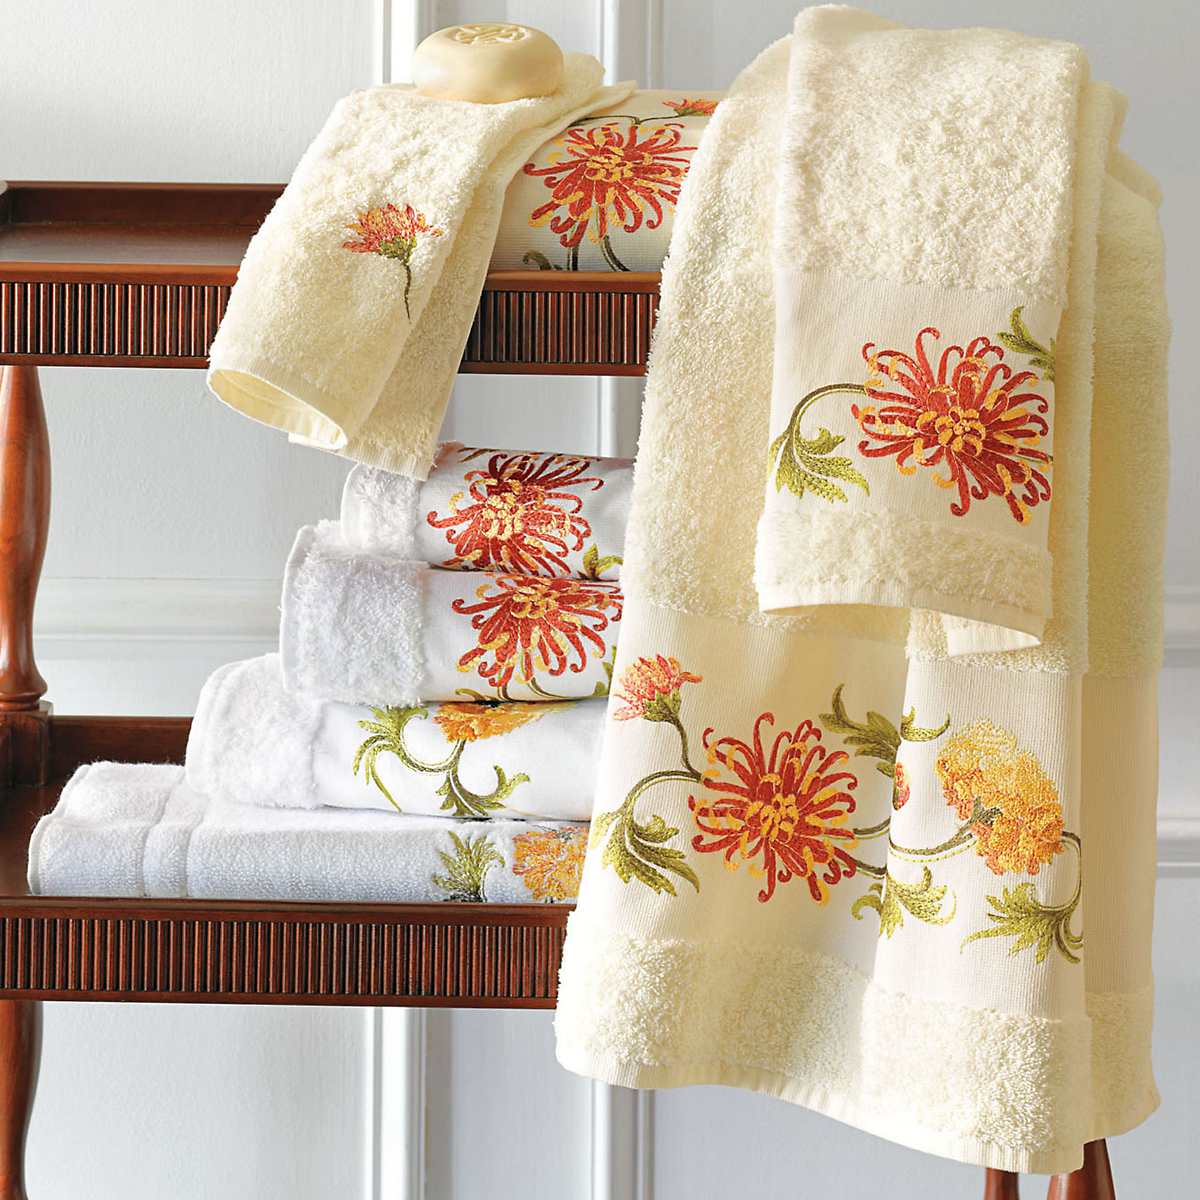 Chrysanthemum Towels